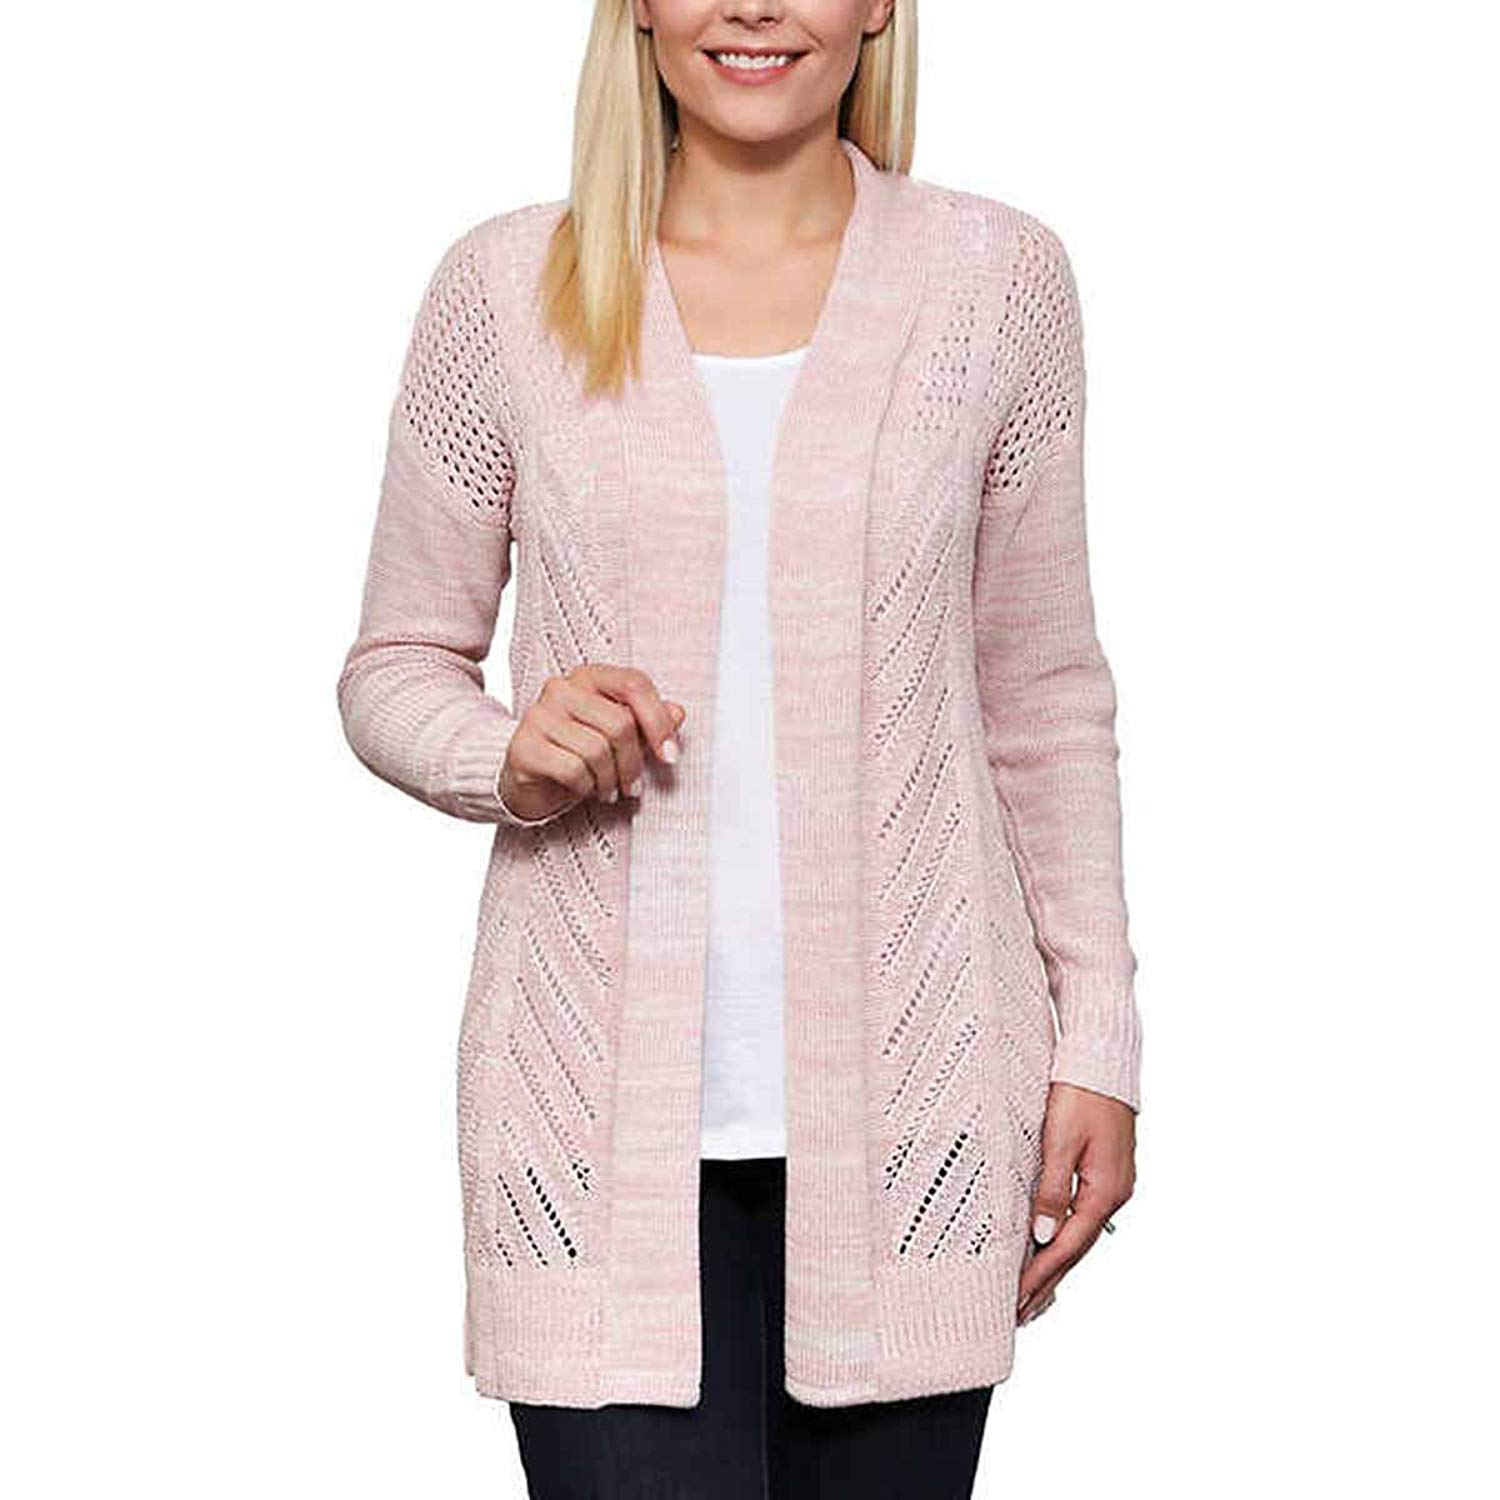 28481b74a77 Leo and Nicole Womens Cardigan Long Sleeve Open Front Marled Rib Trim  Pointelle Sweater